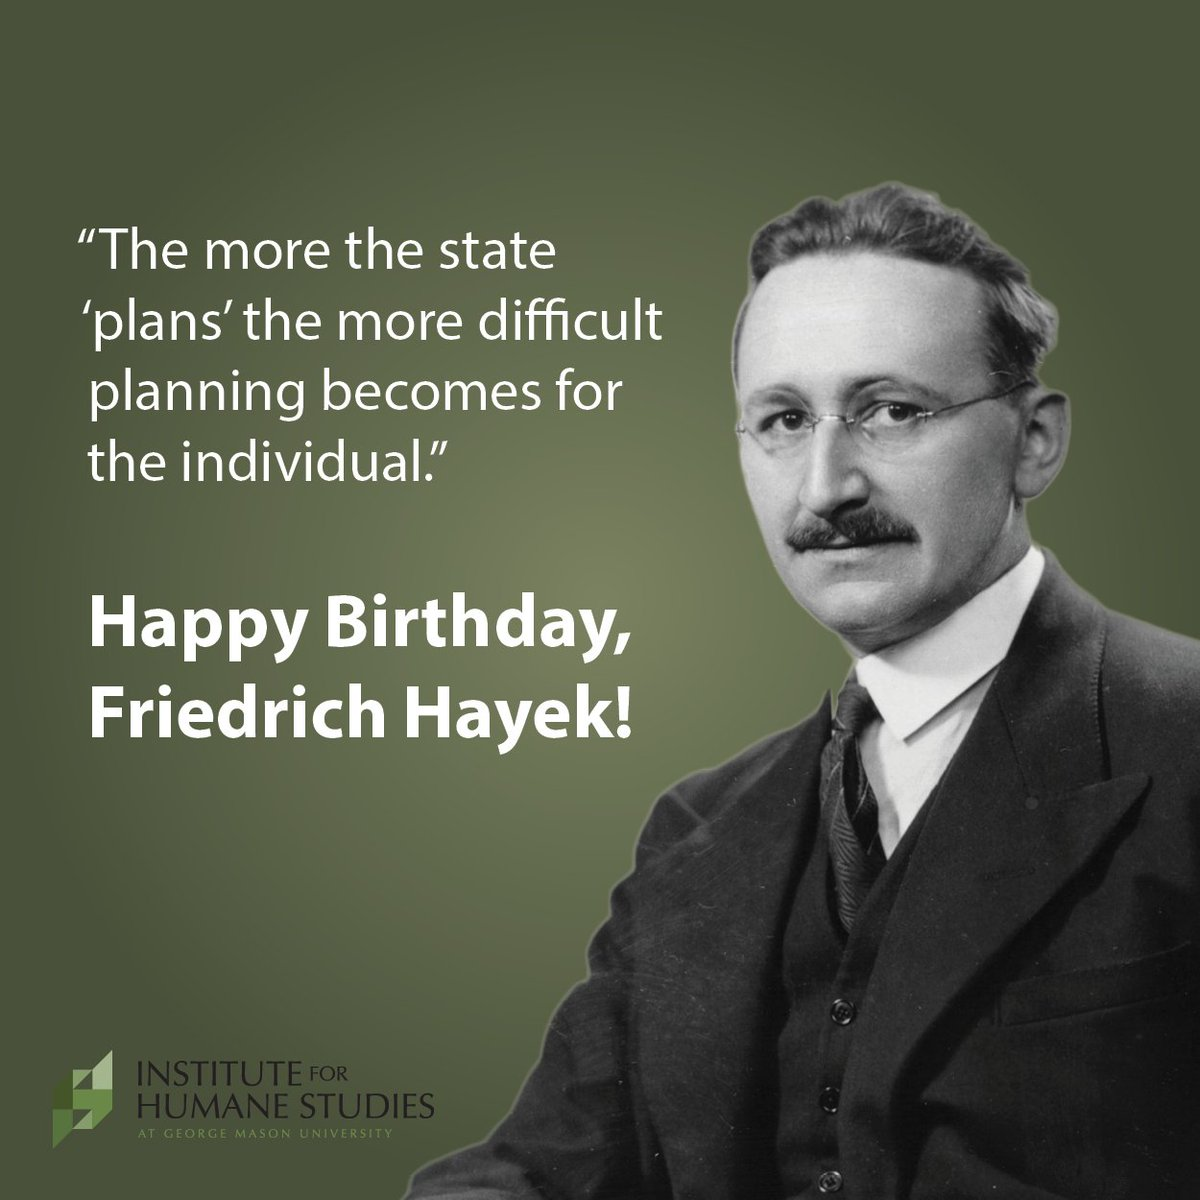 Today is the 117th anniversary of the birth of F. A. Hayek, one of the greatest scholars of the 20th century! https://t.co/ccBMzfEhSH